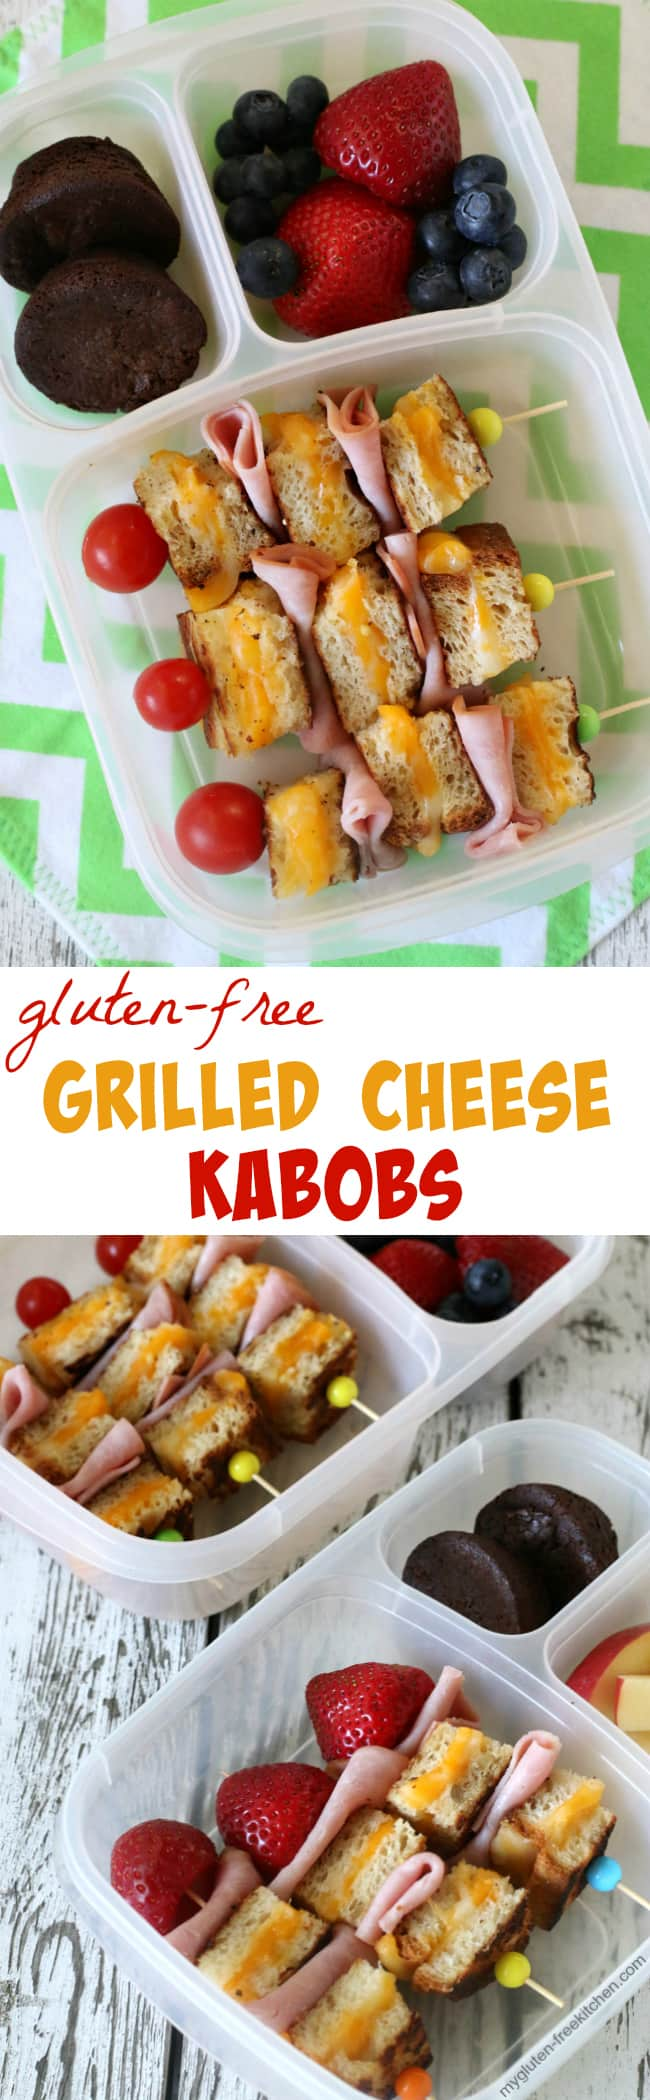 Gluten-free Grilled Cheese Kabobs for school lunches. My tween and teen loved these!